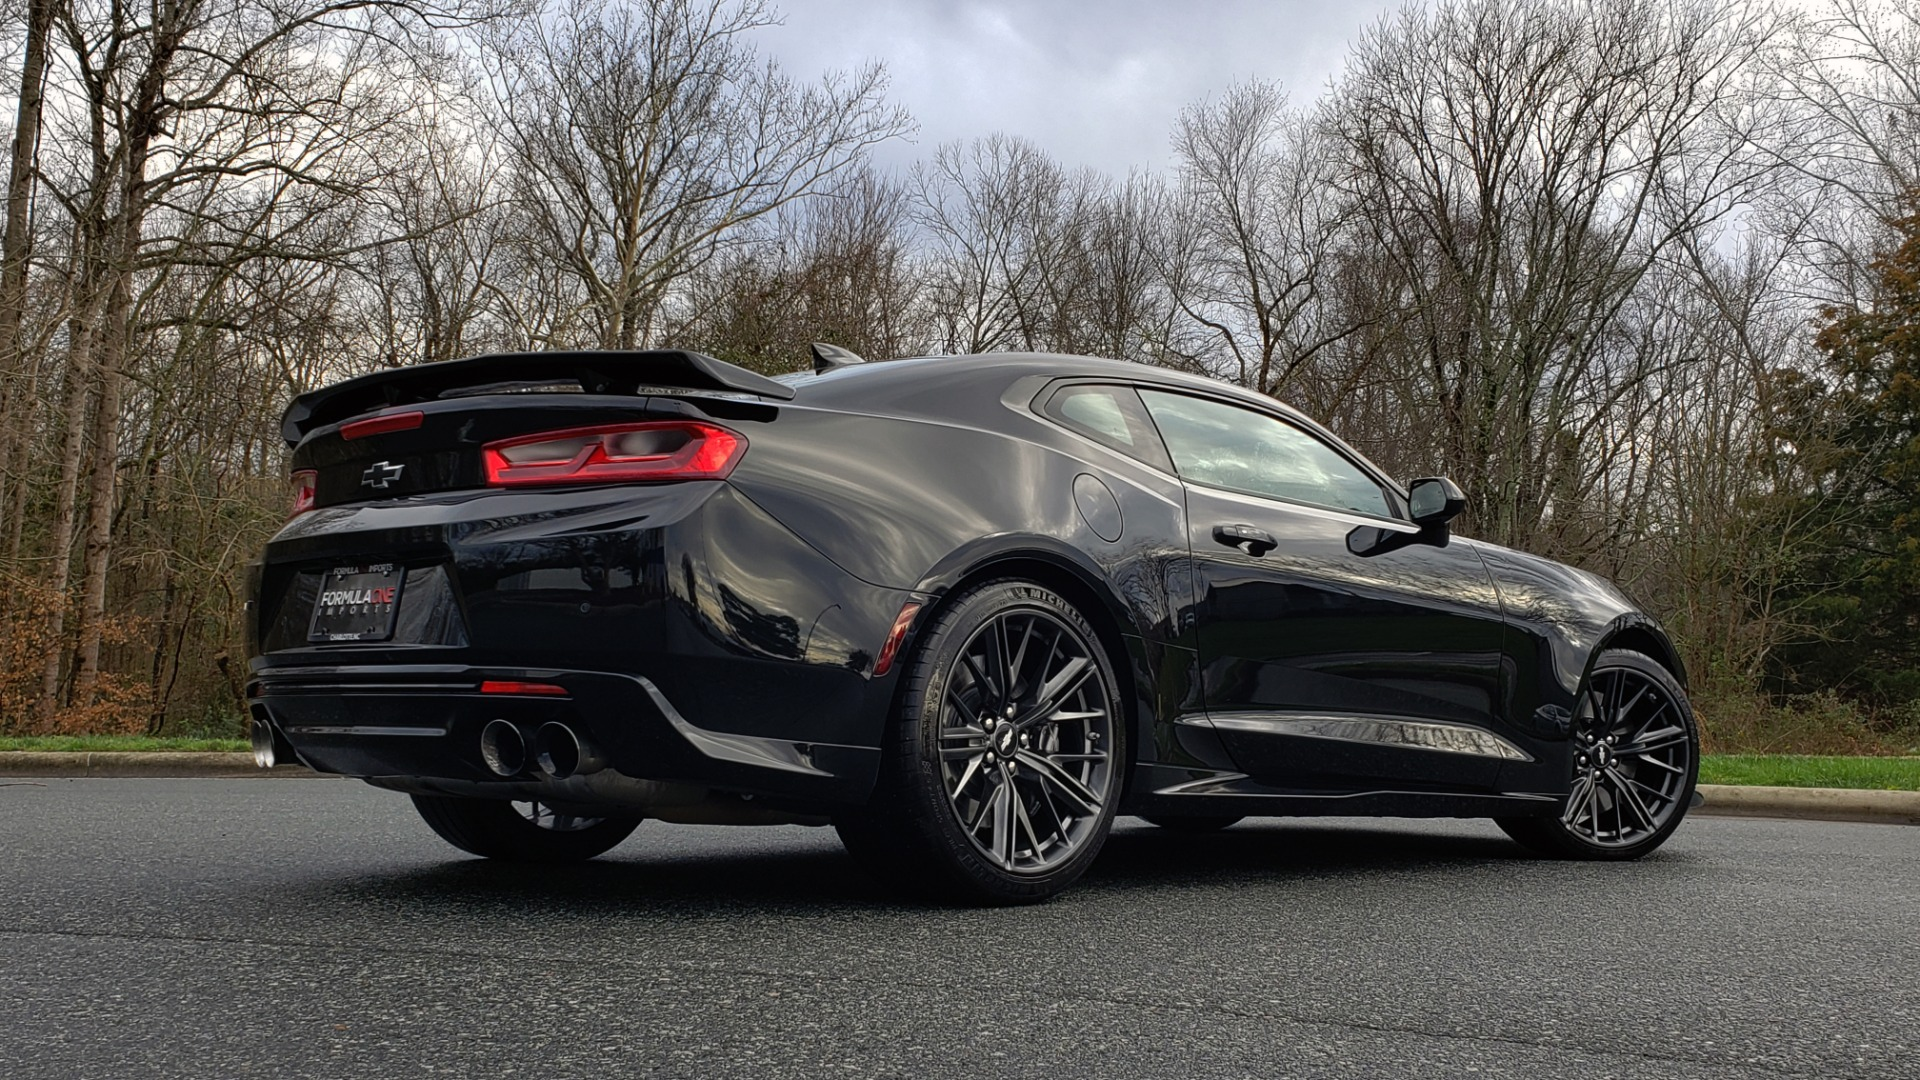 Used 2018 Chevrolet CAMARO ZL1 6.2L SUPERCHARGED V8 650 / NAV / SUNROOF / REARVIEW for sale Sold at Formula Imports in Charlotte NC 28227 9